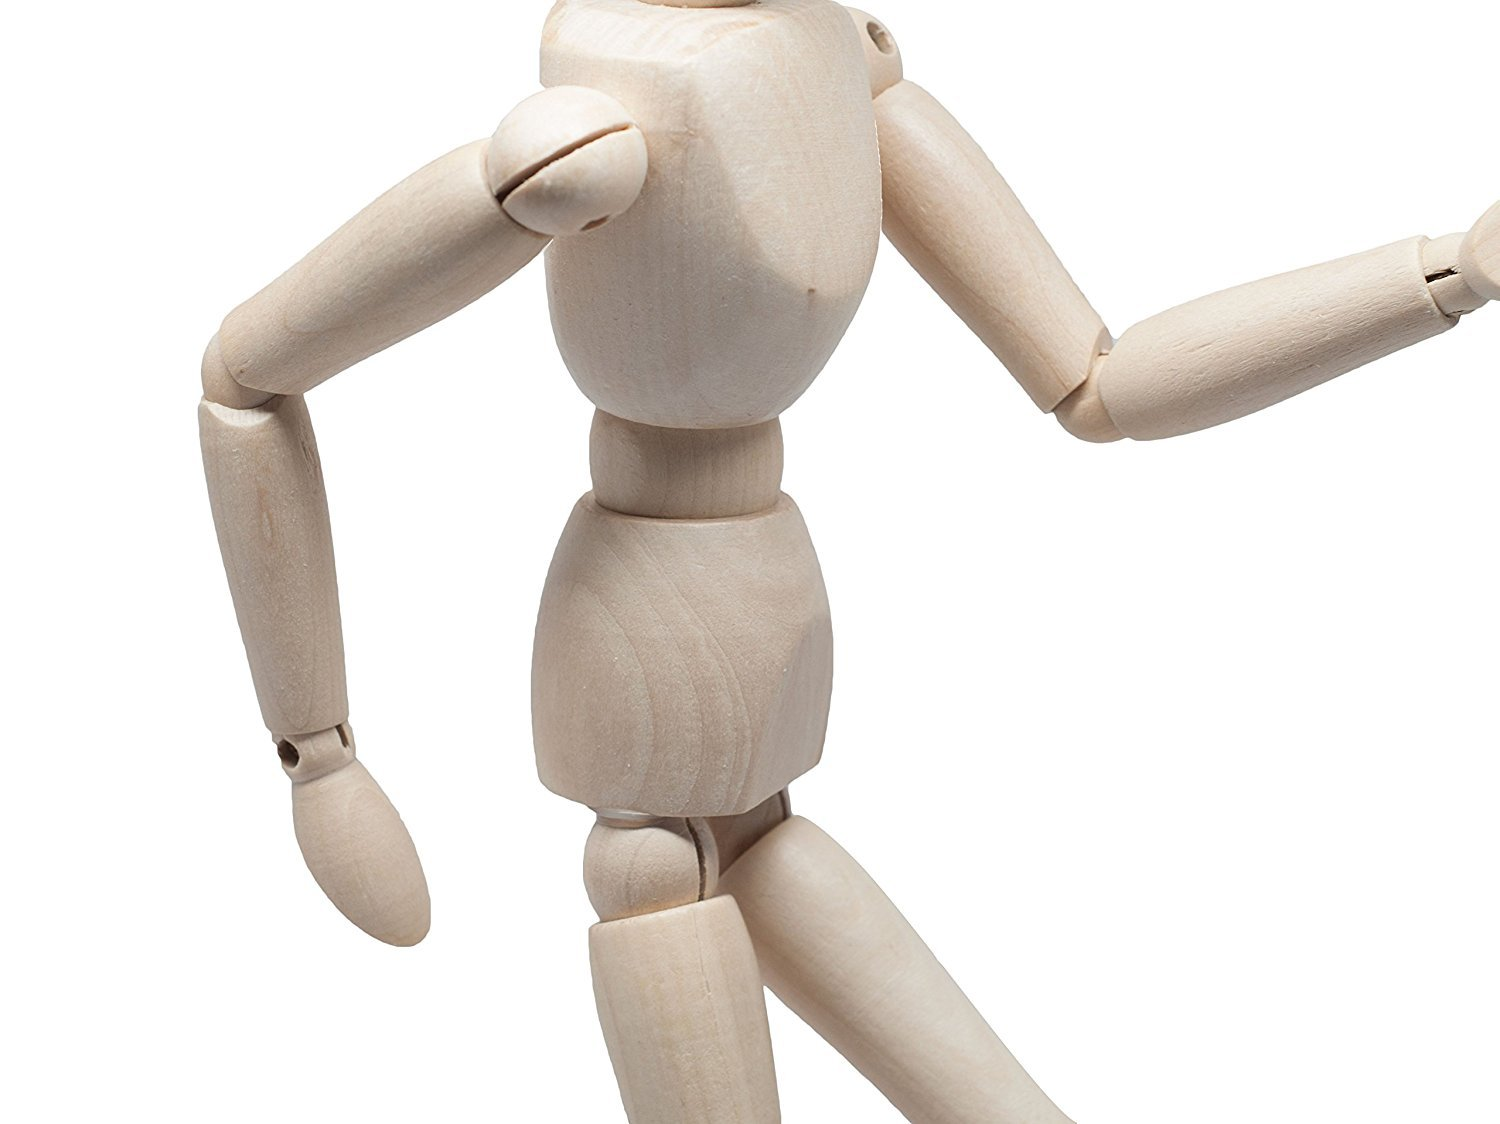 8 Inch Wooden Manikin Figure with Flexible Joints Posable Articulated Mannequin Human Drawing Model